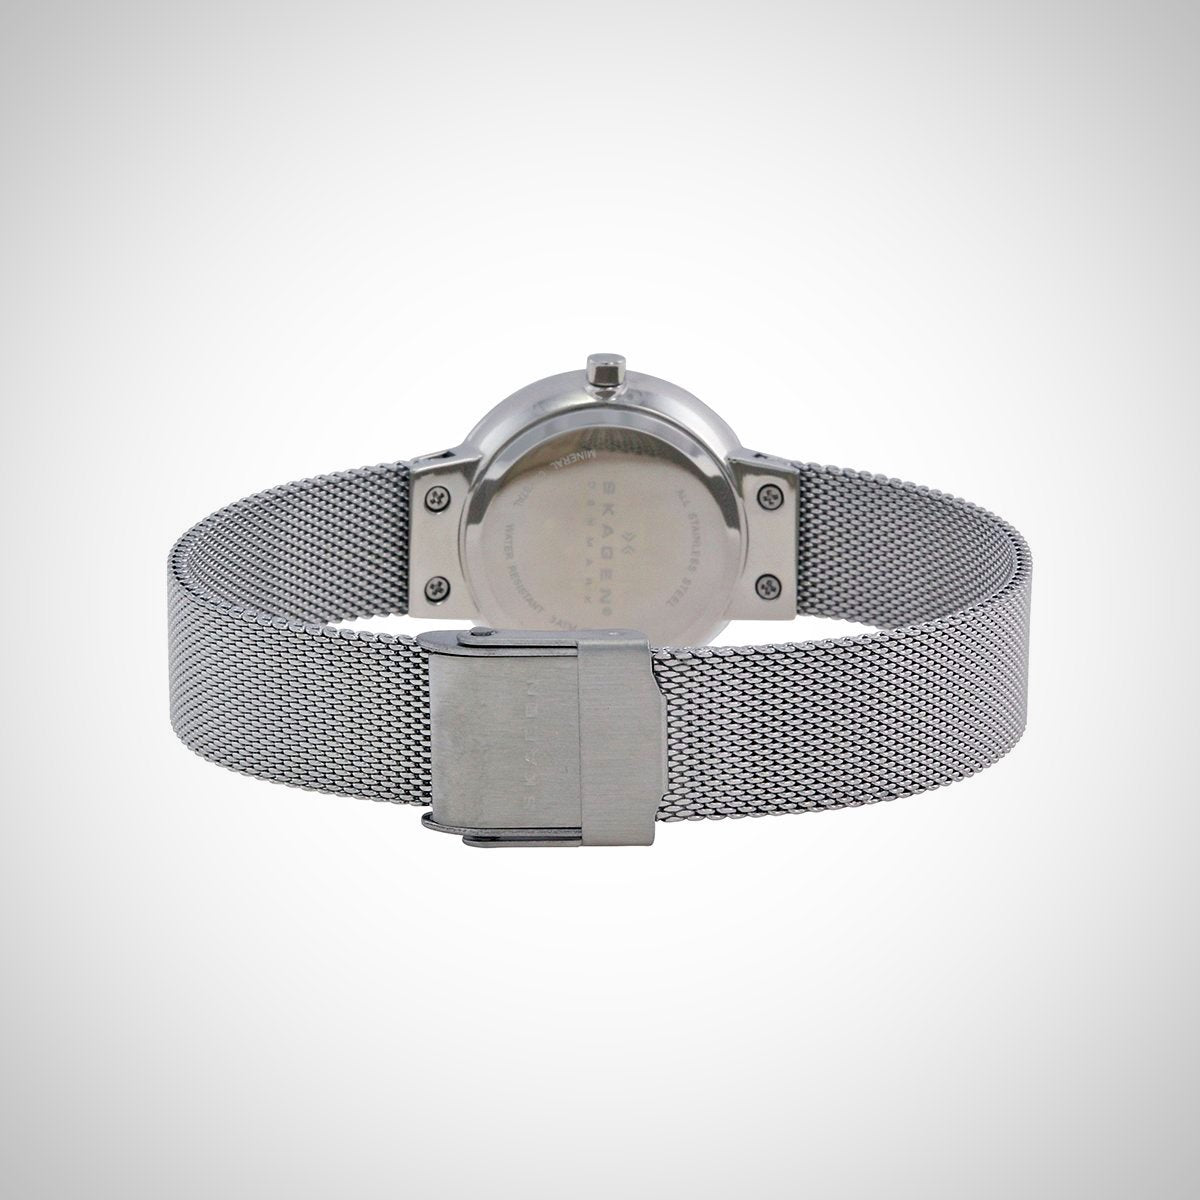 Skagen 456SSS Women's Quartz Silver Dial Analogue Display and Silver Stainless Steel Strap Watch